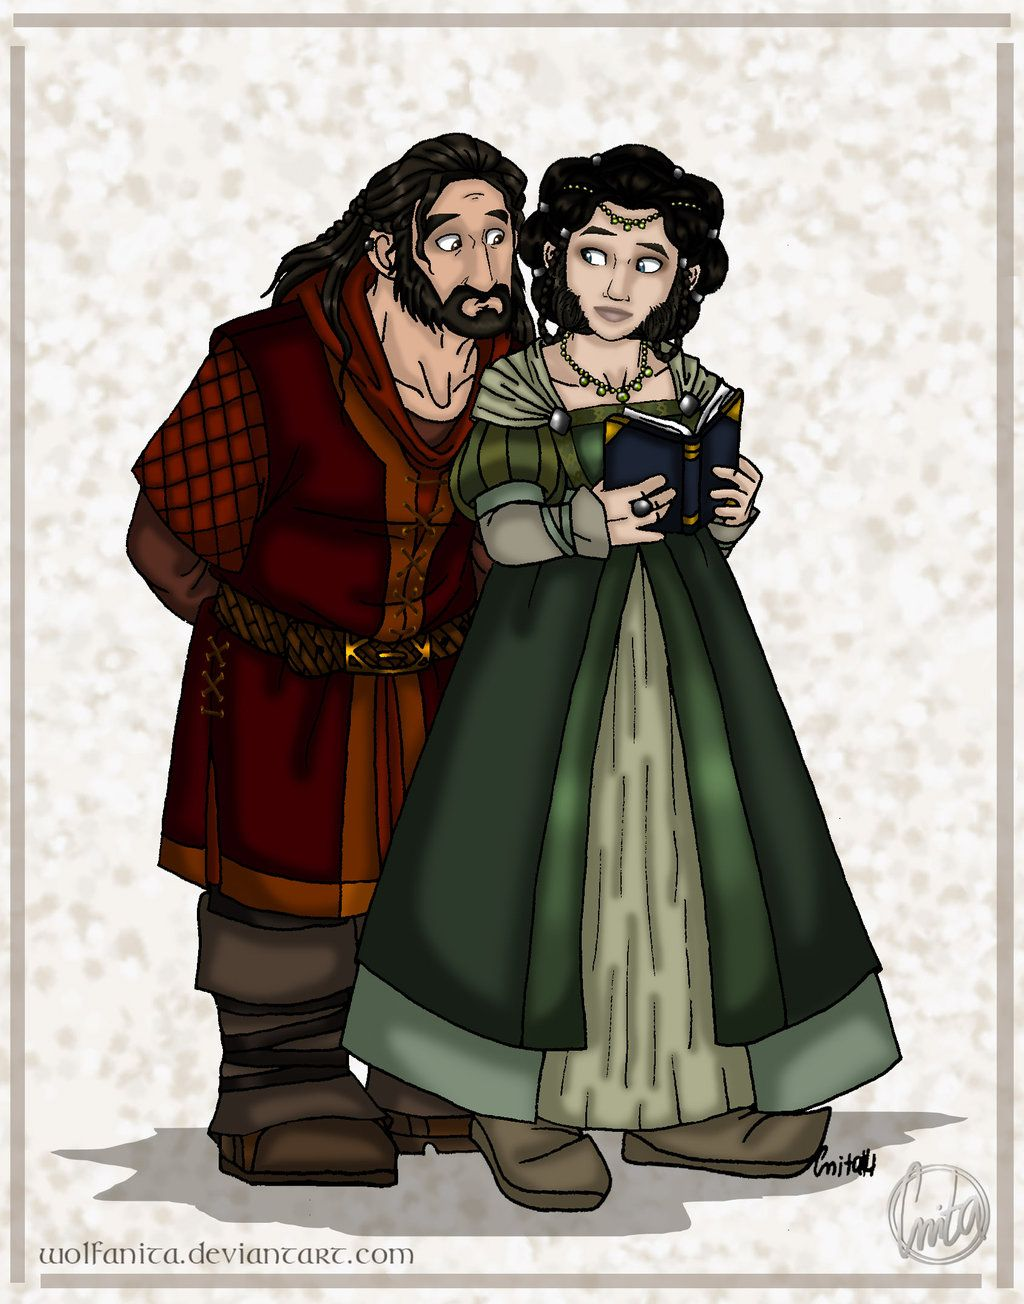 The Hobbit Doodle: Frerin and Dis by wolfanita on deviantart